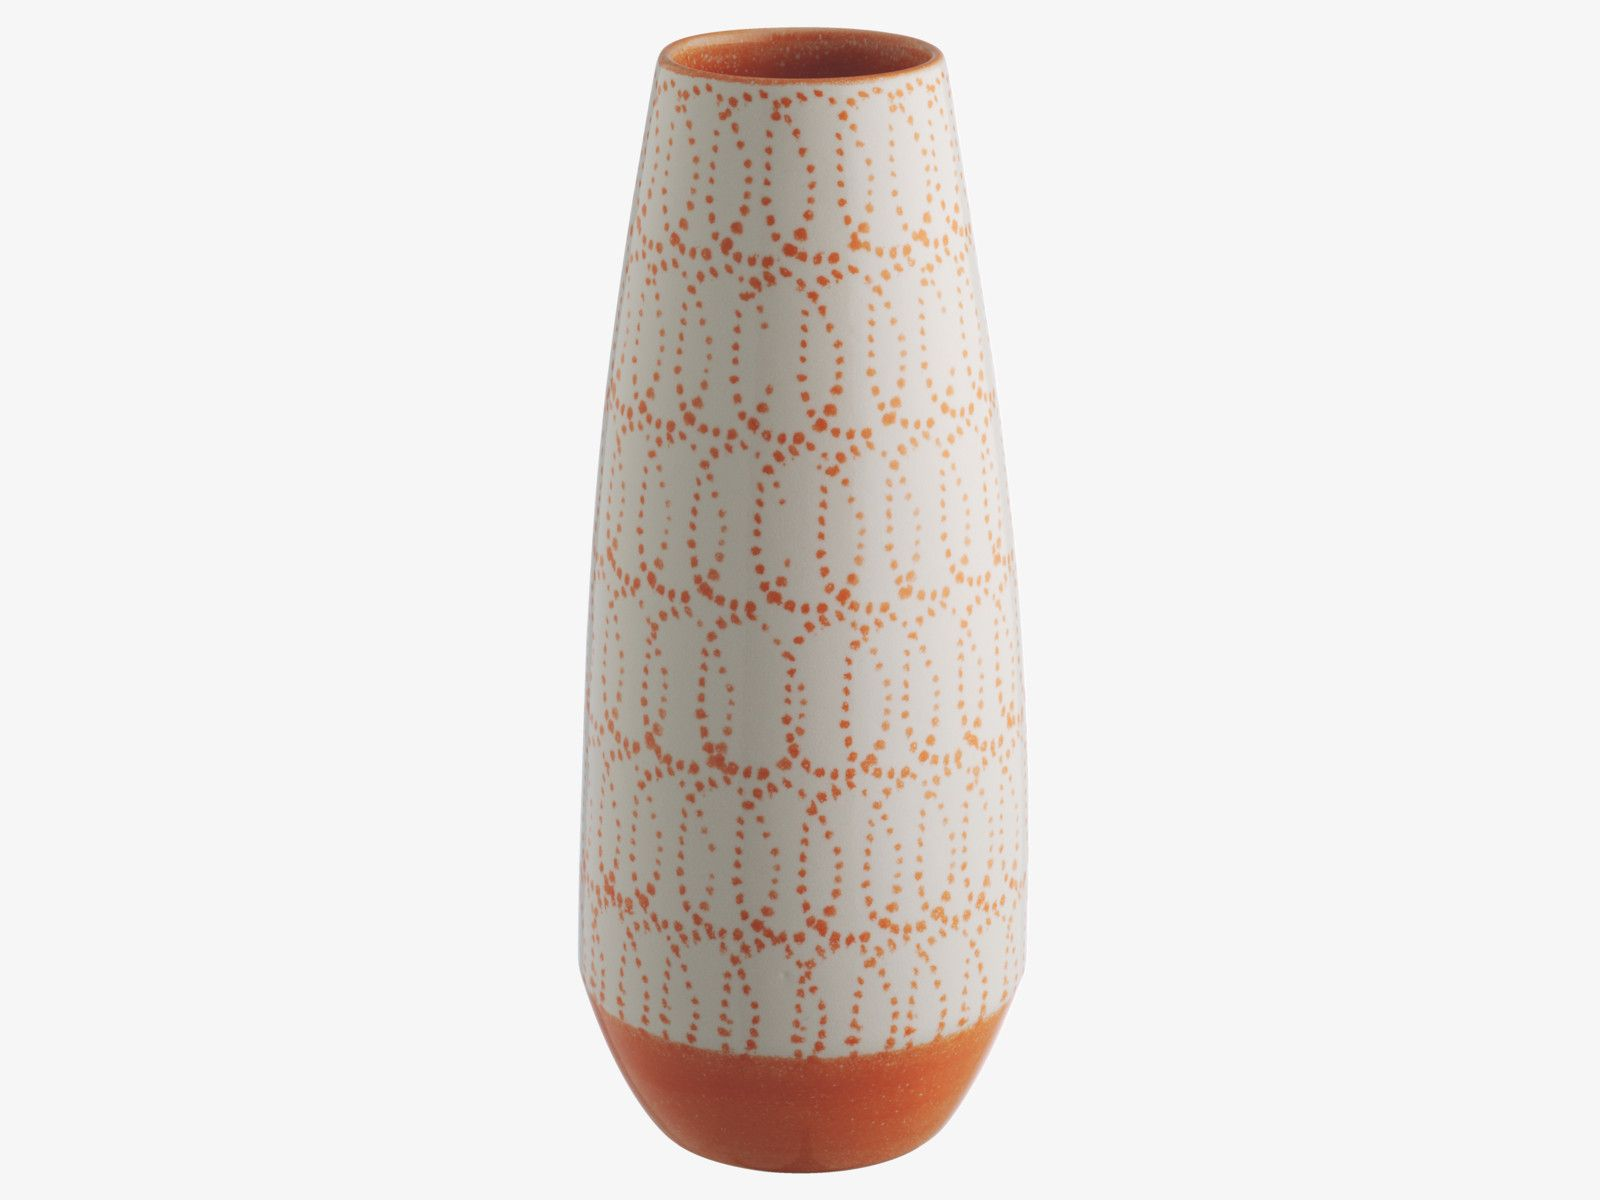 Fernanda orange ceramic tall orange patterned vase habitatuk fernanda orange ceramic tall orange patterned vase habitatuk reviewsmspy